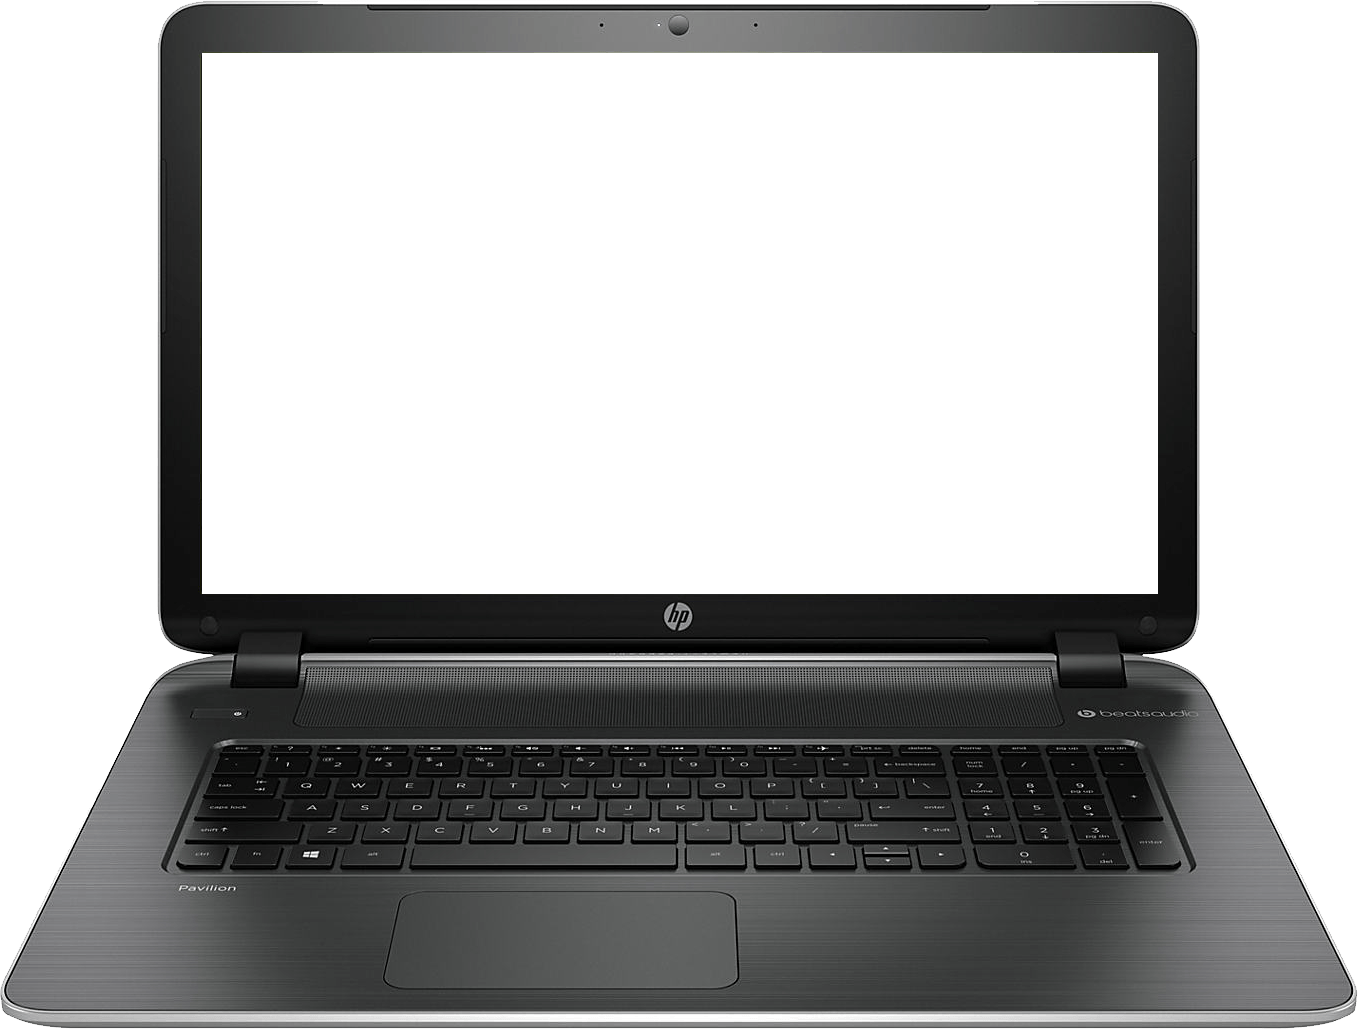 Thin Hp Laptop transparent PNG.